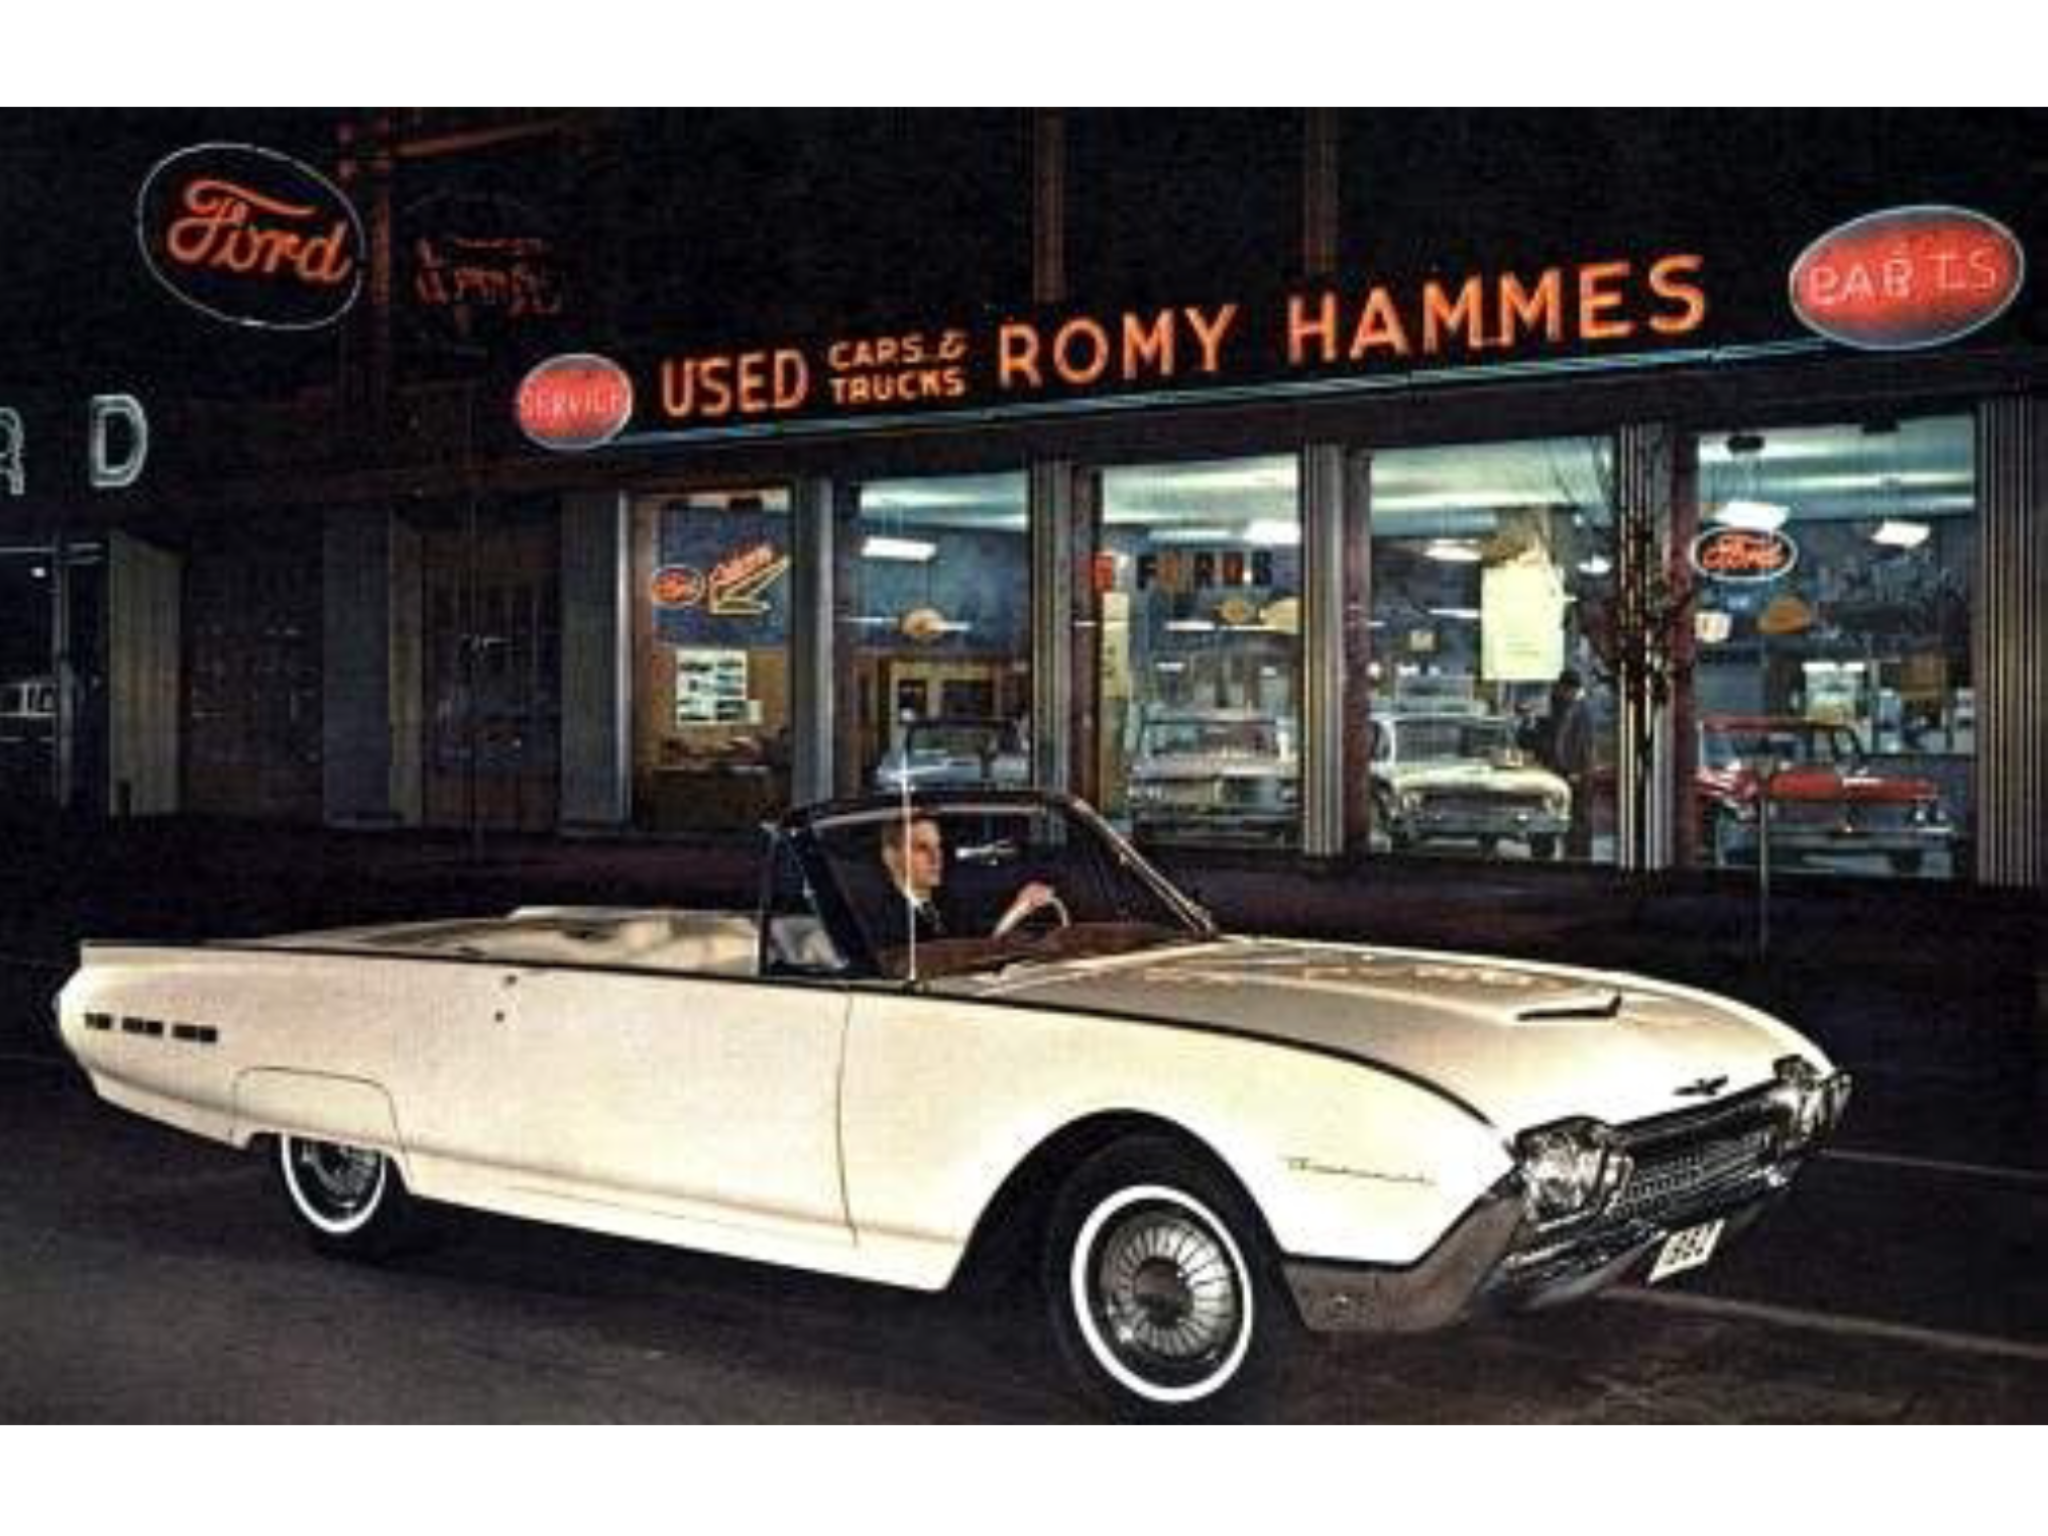 1962 Romy Hammes Ford Dealership South Bend Indiana